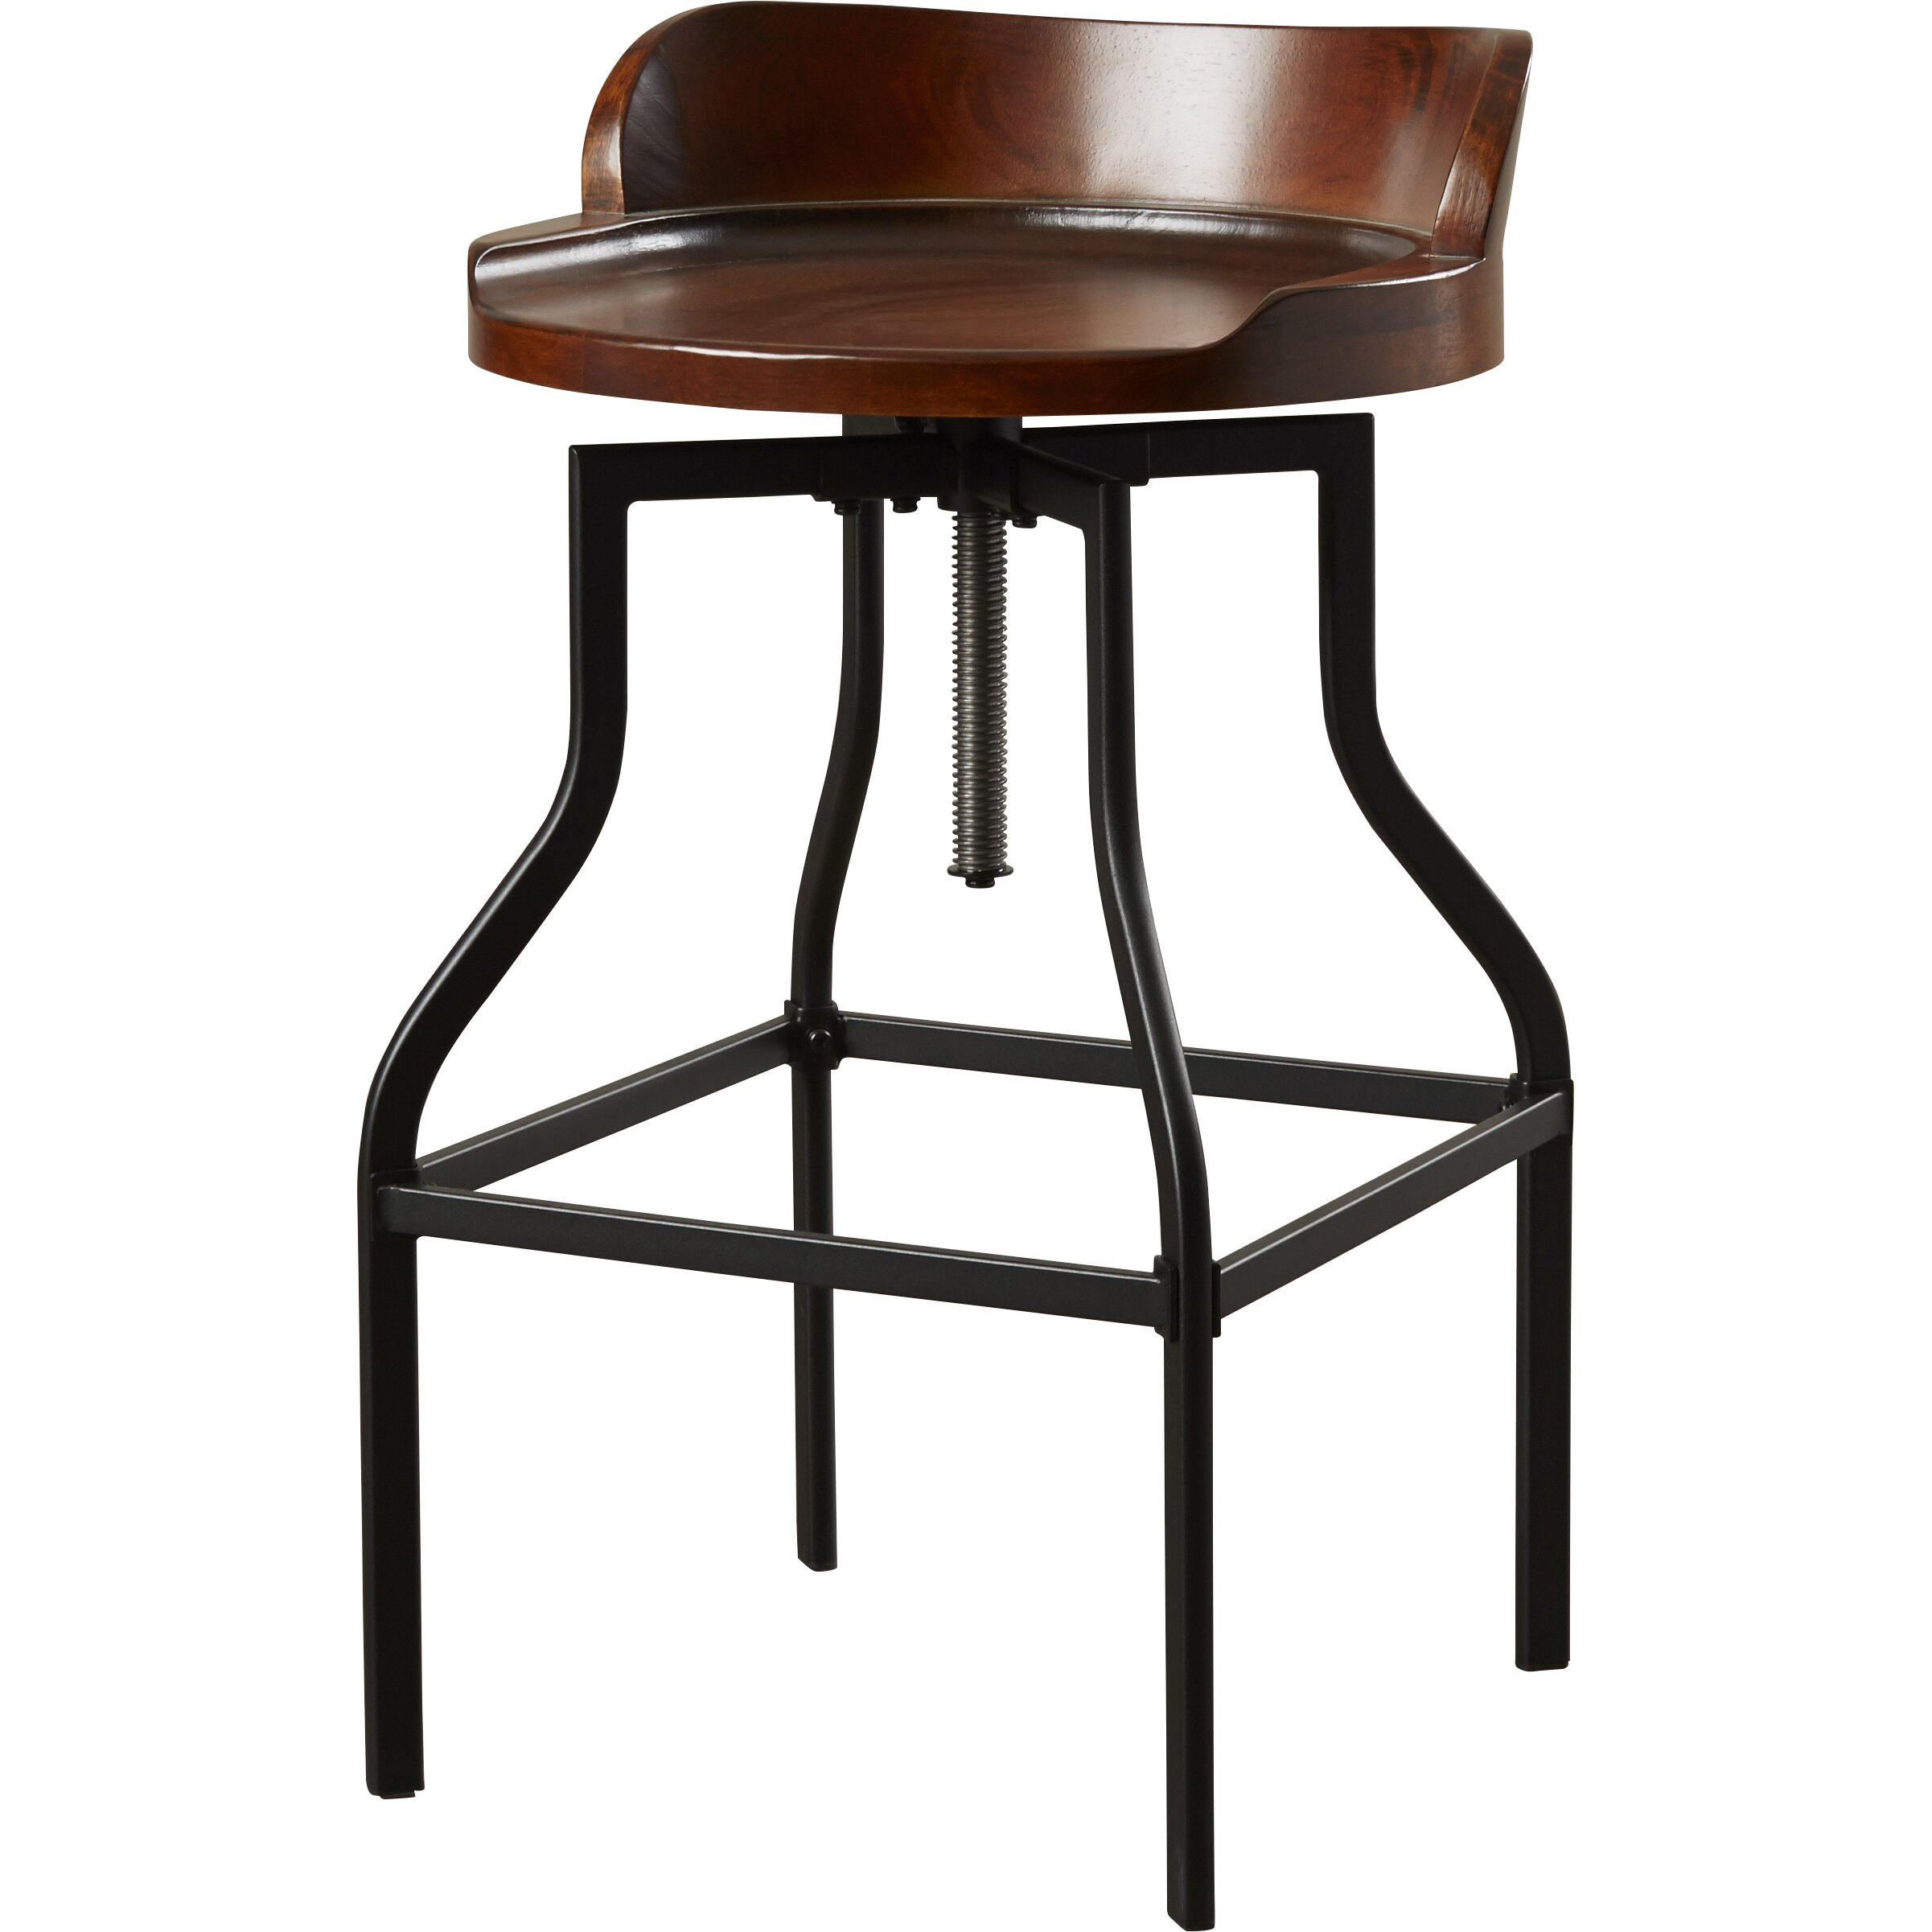 Trent Austin Design Adjustable Height Swivel Bar Stool  : Trent Austin Design25C225AE Adjustable Height Swivel Bar Stool from www.wayfair.com size 2402 x 2402 jpeg 349kB